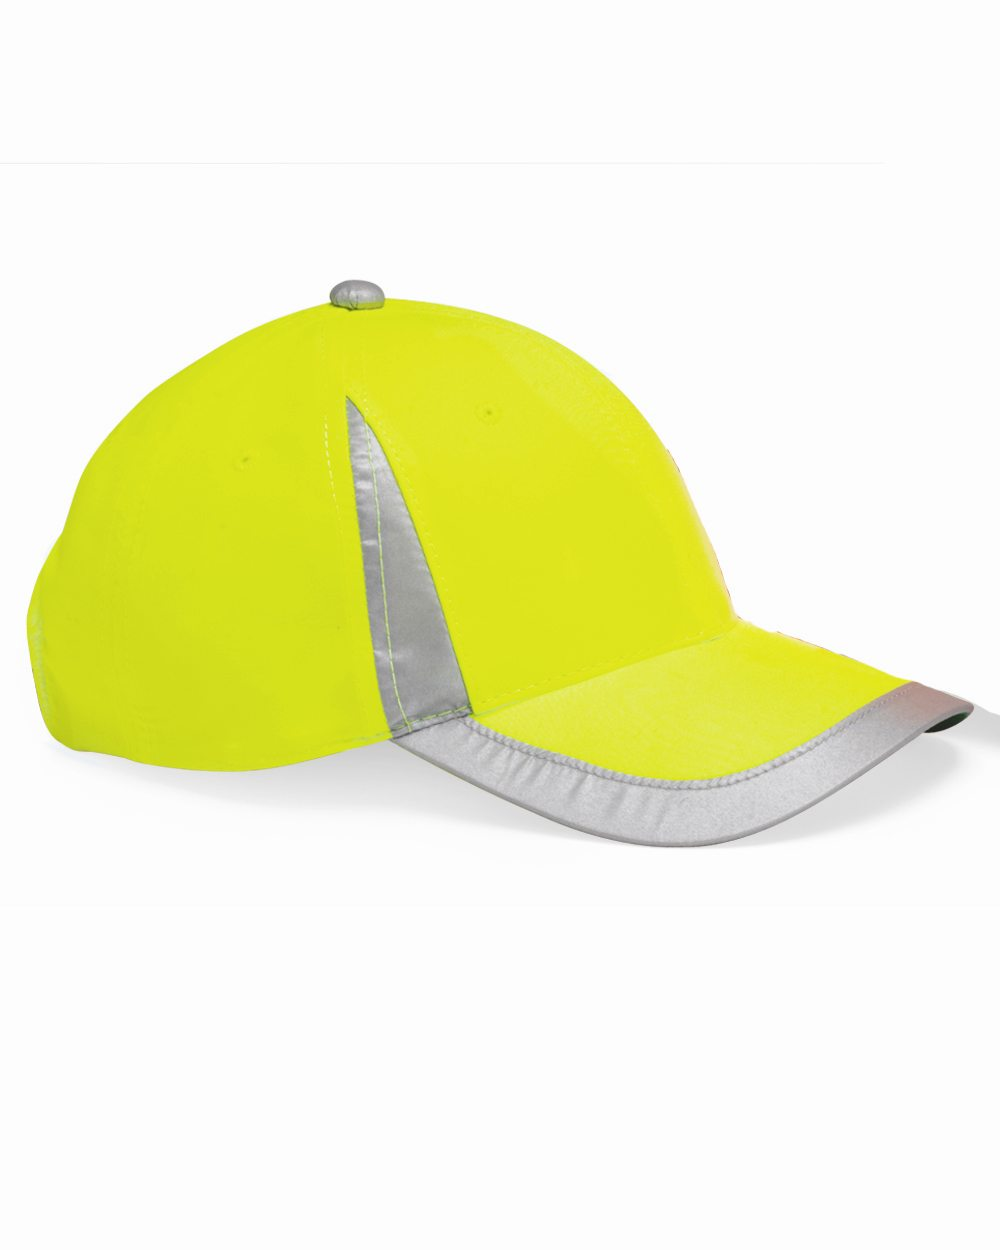 Outdoor Cap SAF100 Safety V Crown Cap